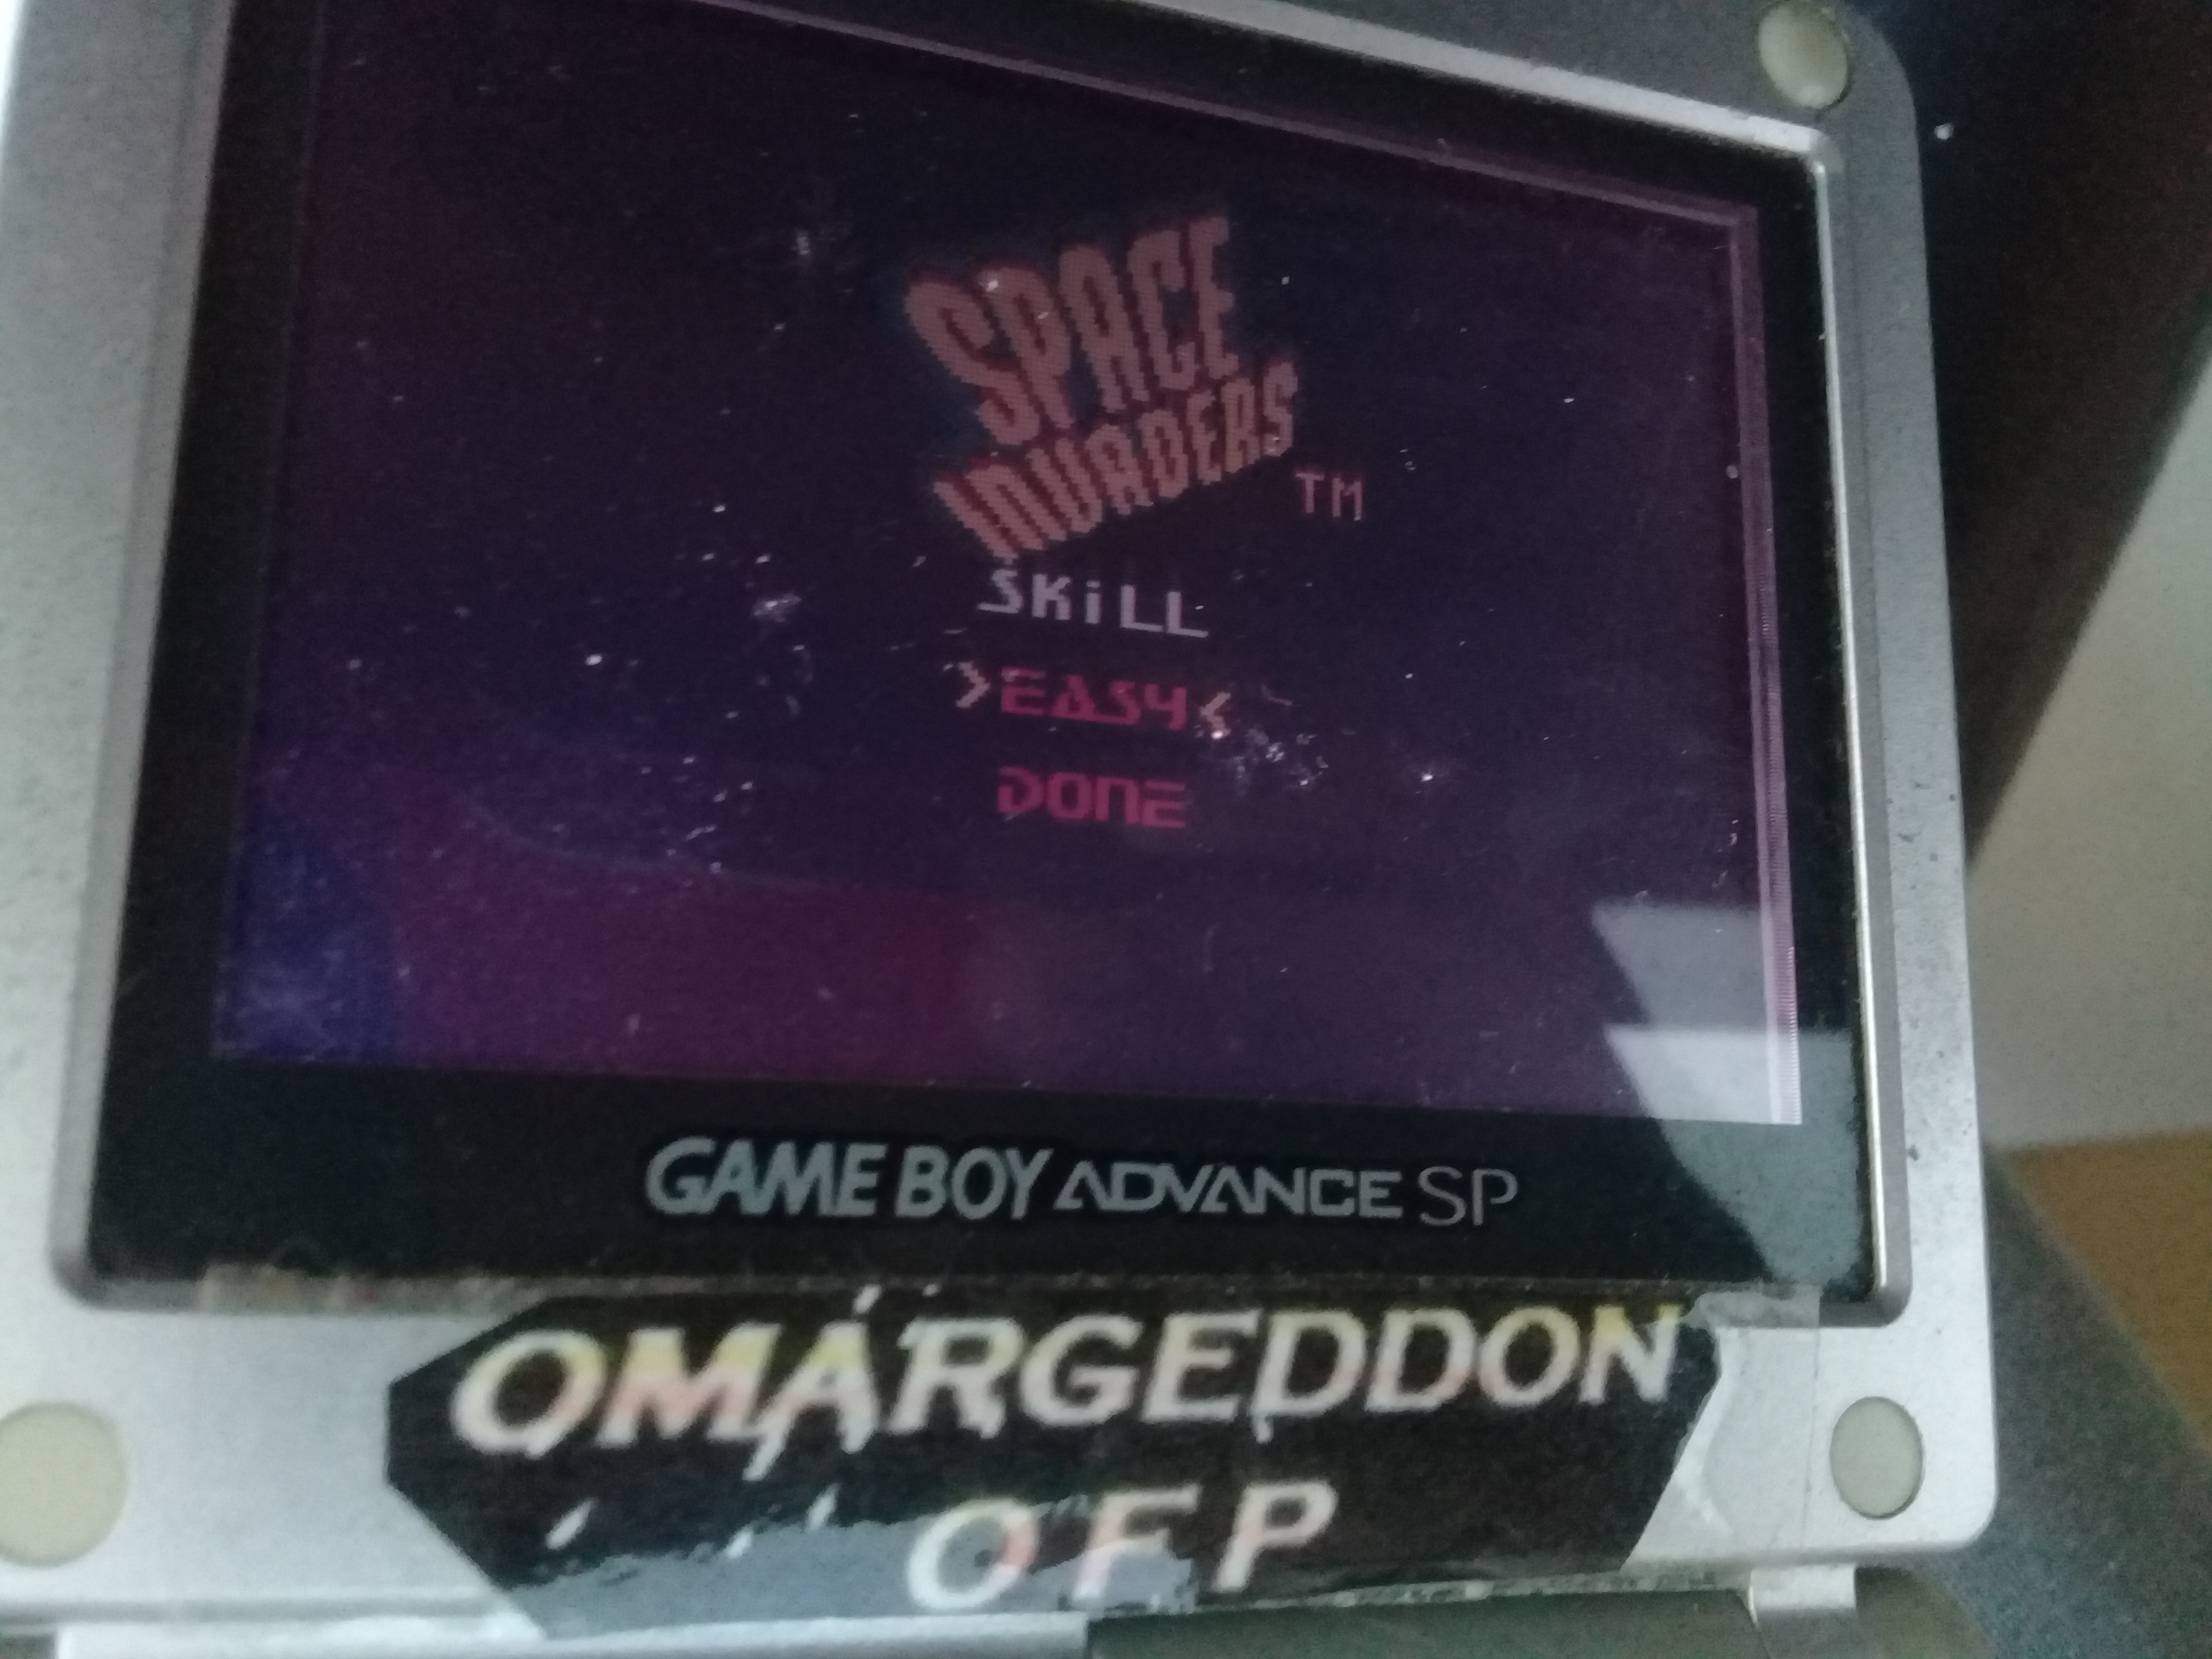 omargeddon: Space Invaders [Easy] (Game Boy Color) 8,637 points on 2019-04-19 17:35:23